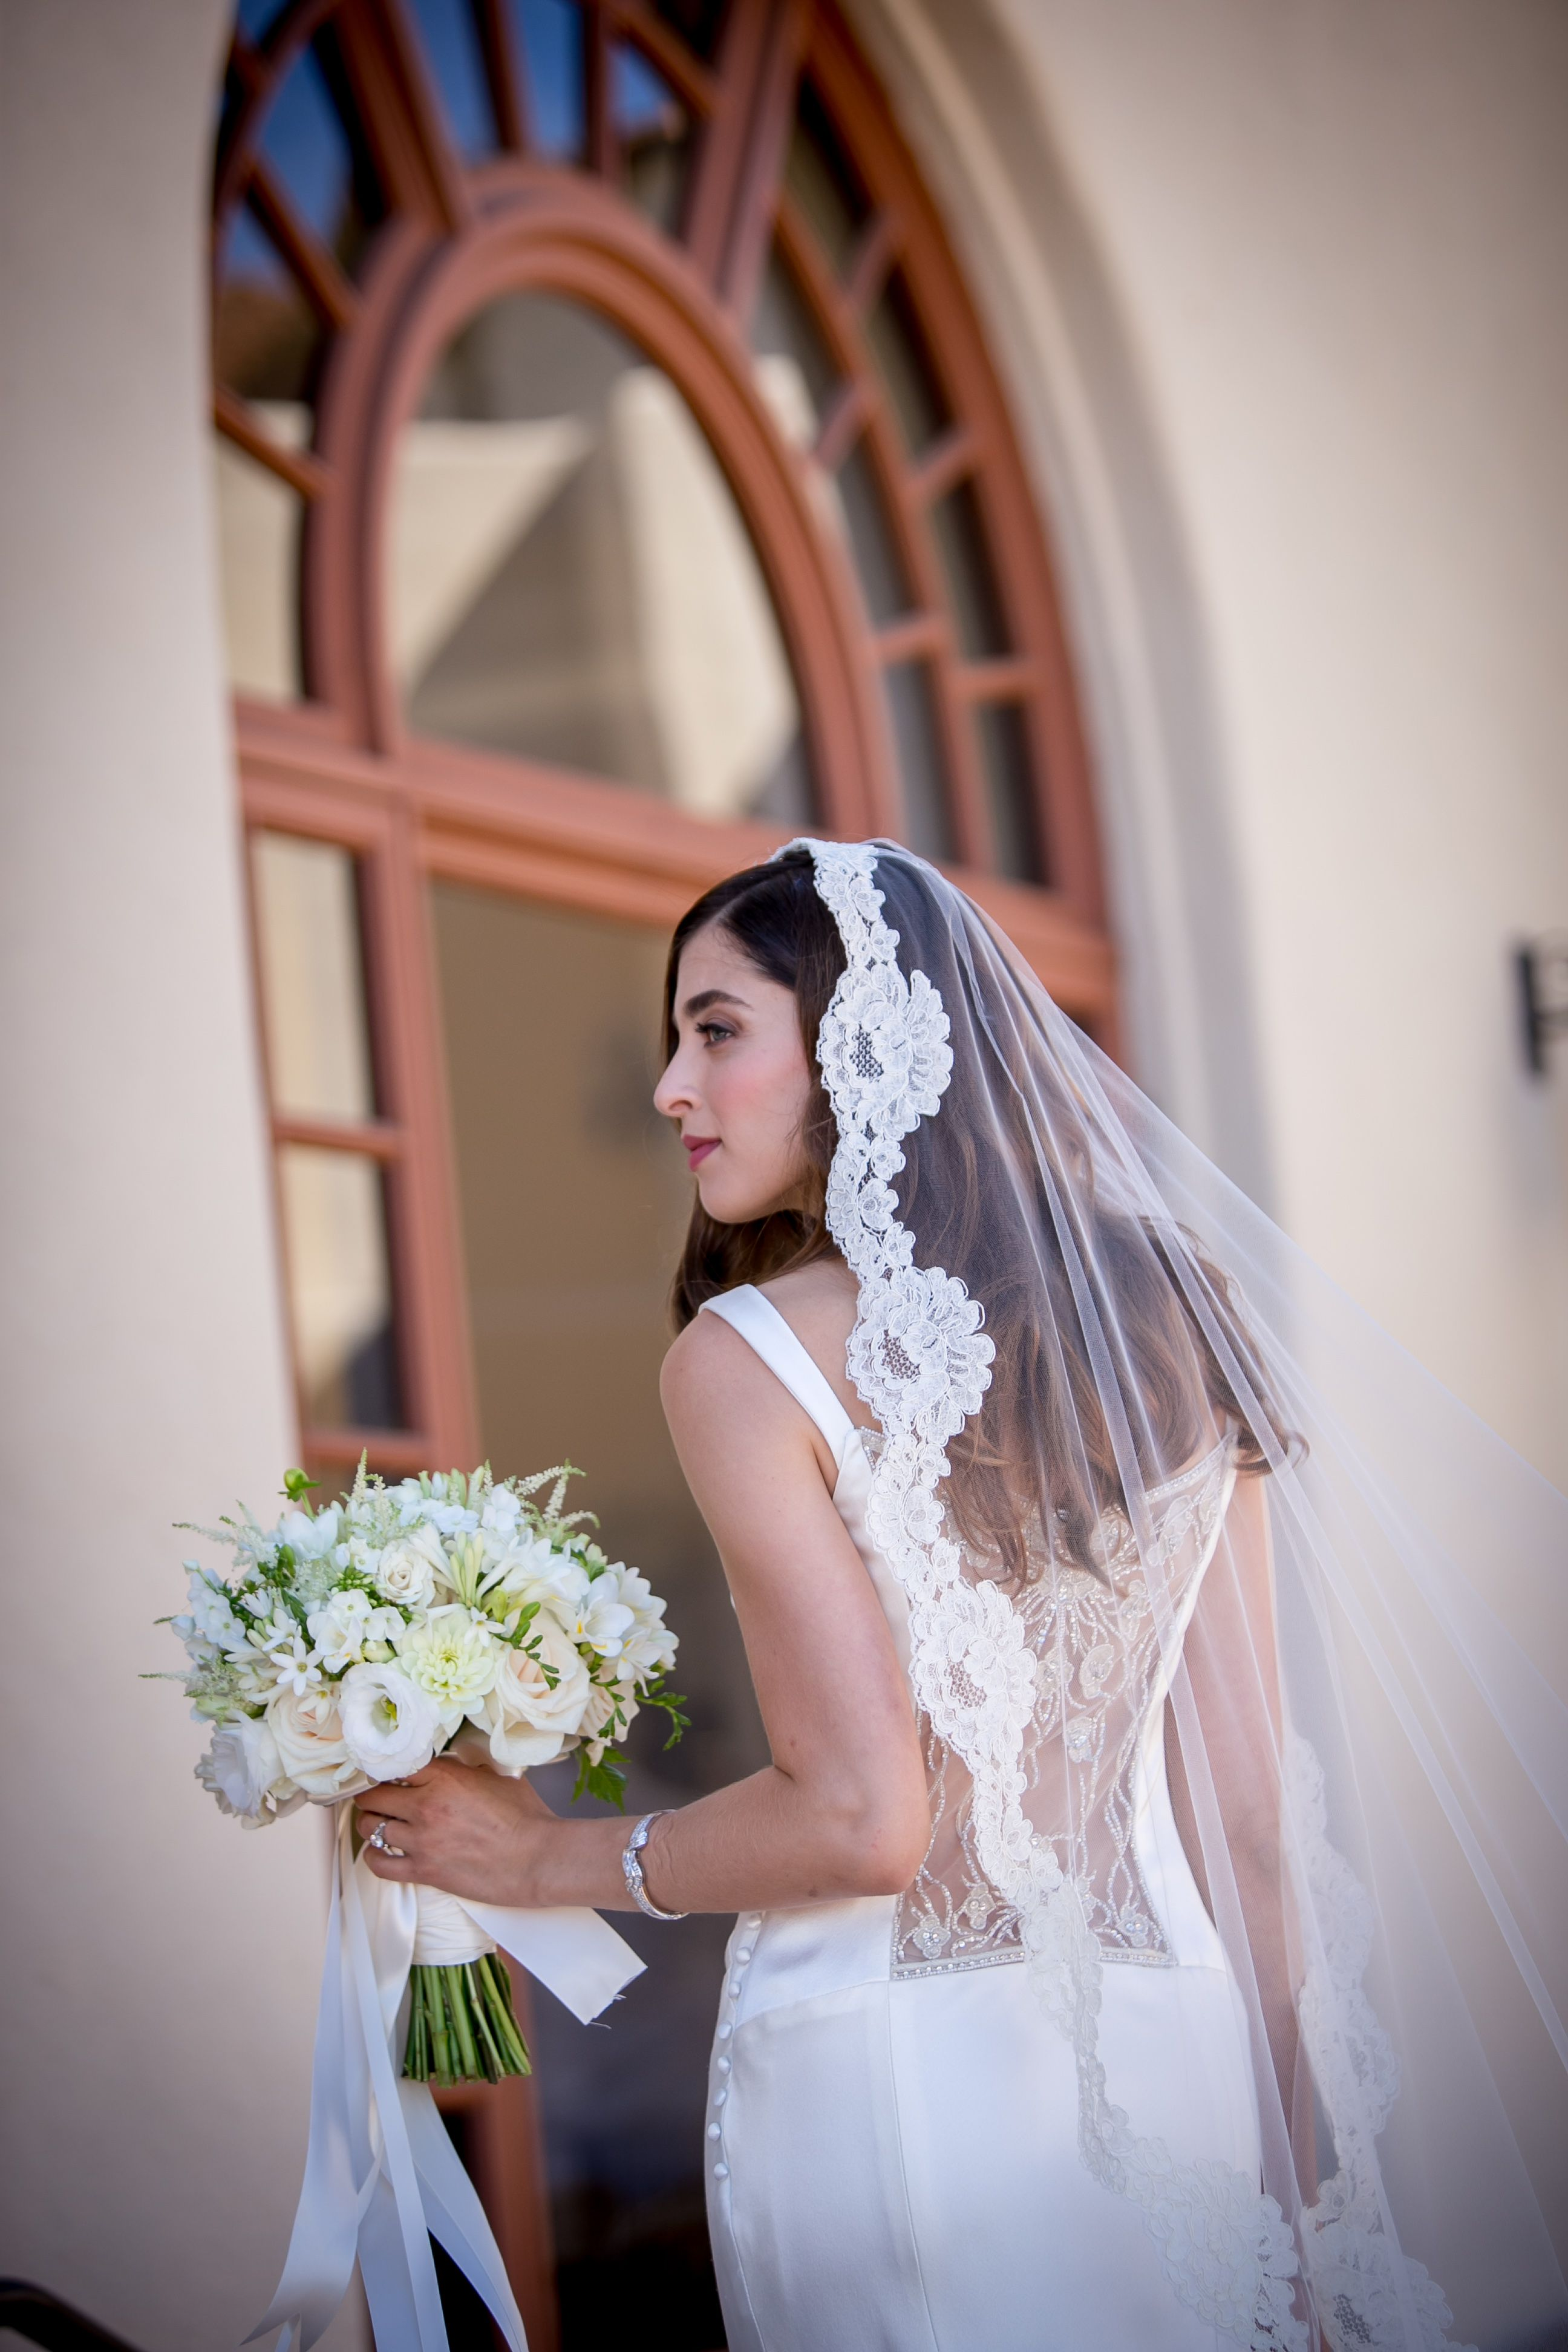 Amy's wedding dress  Flowers by Blossom Floral Inc Photograph by Michael Brannigan